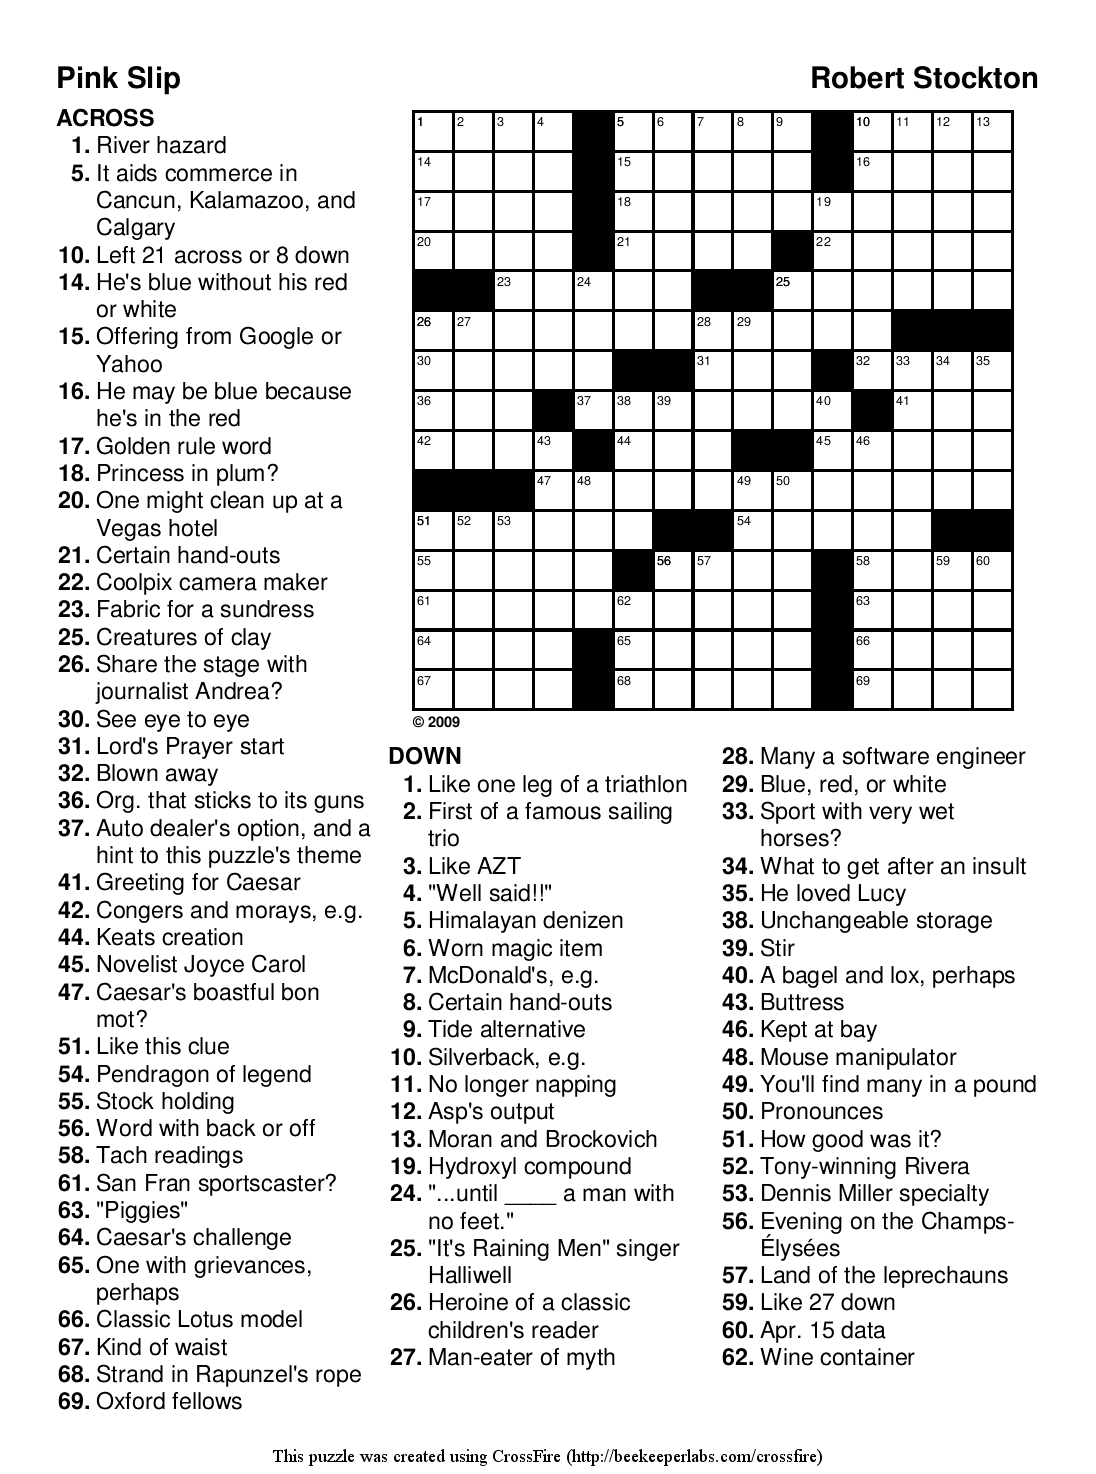 Printable Puzzles For Adults | Easy Word Puzzles Printable Festivals - Free Printable Bible Crossword Puzzles For Adults